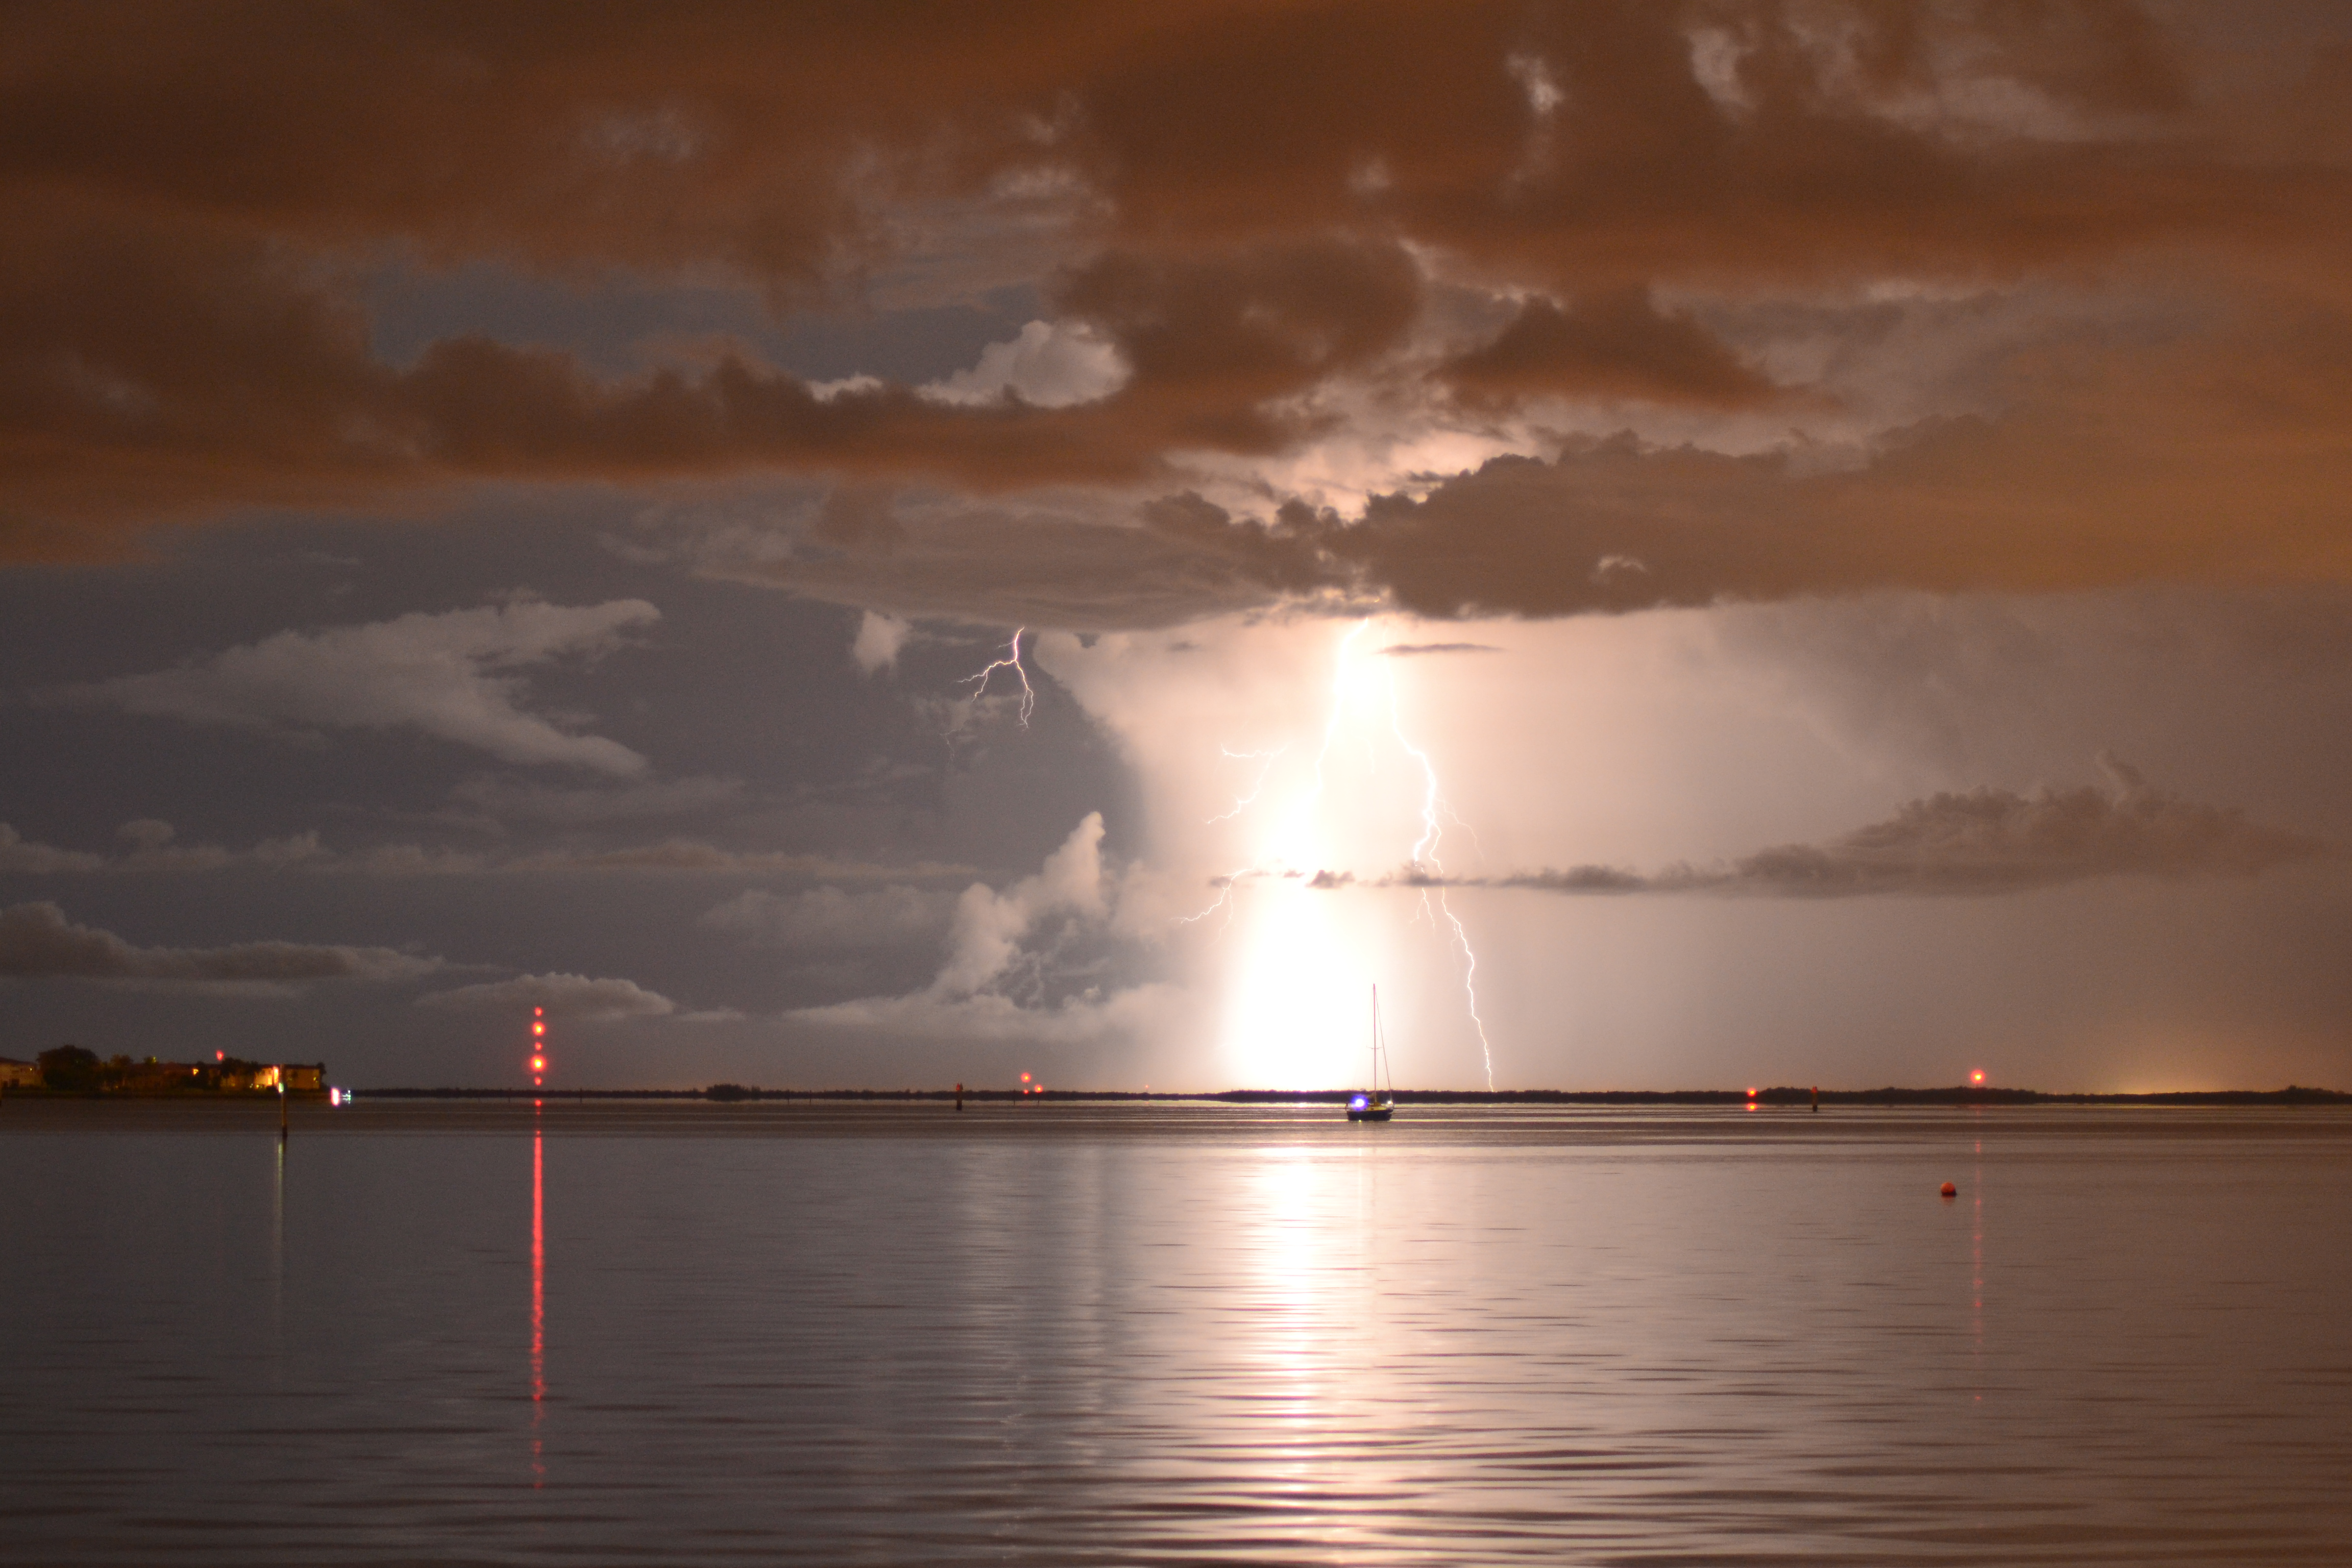 Lighting Strikes Over Calm Water artwork by Jasmin Pawlowicz - art listed for sale on Artplode